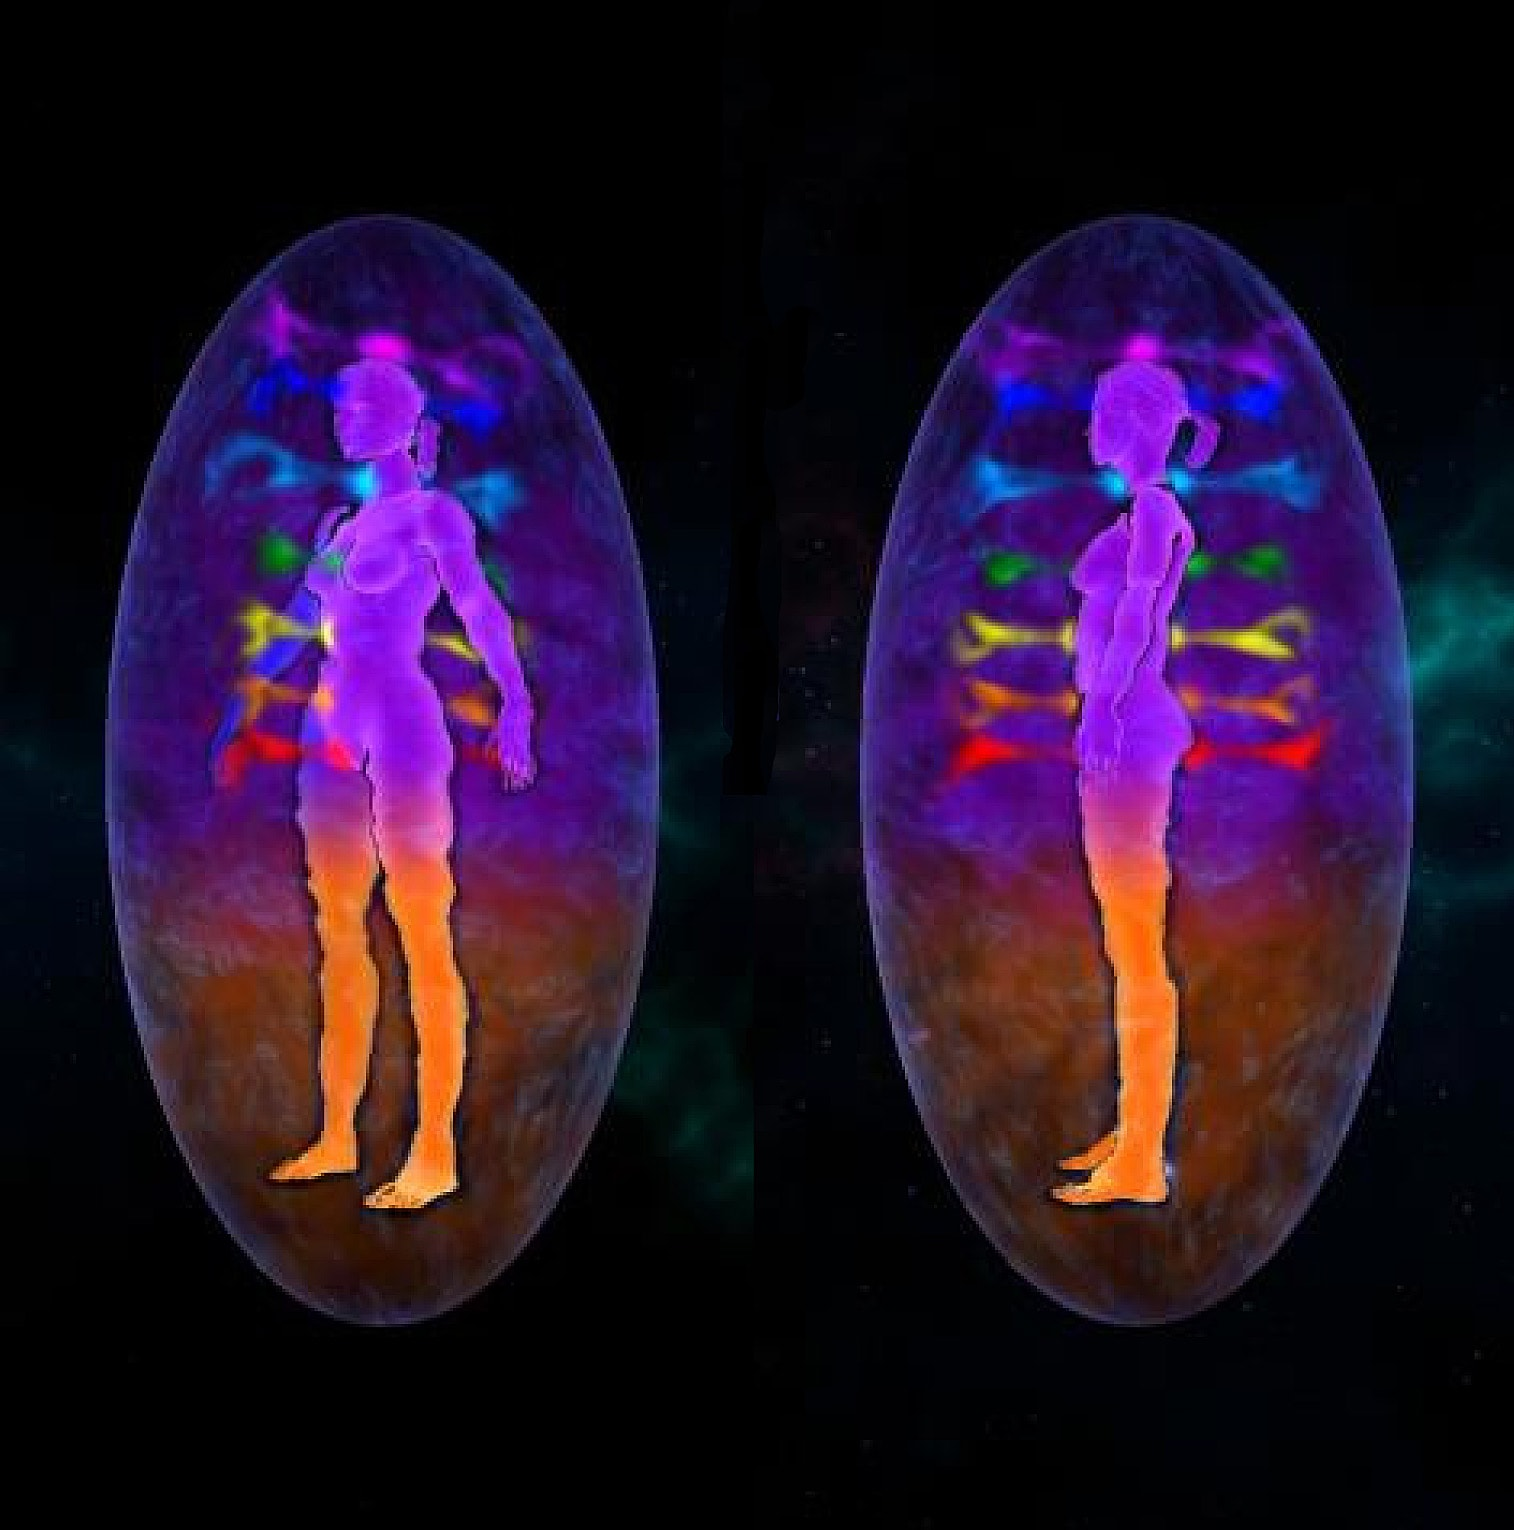 chakras and aura differences